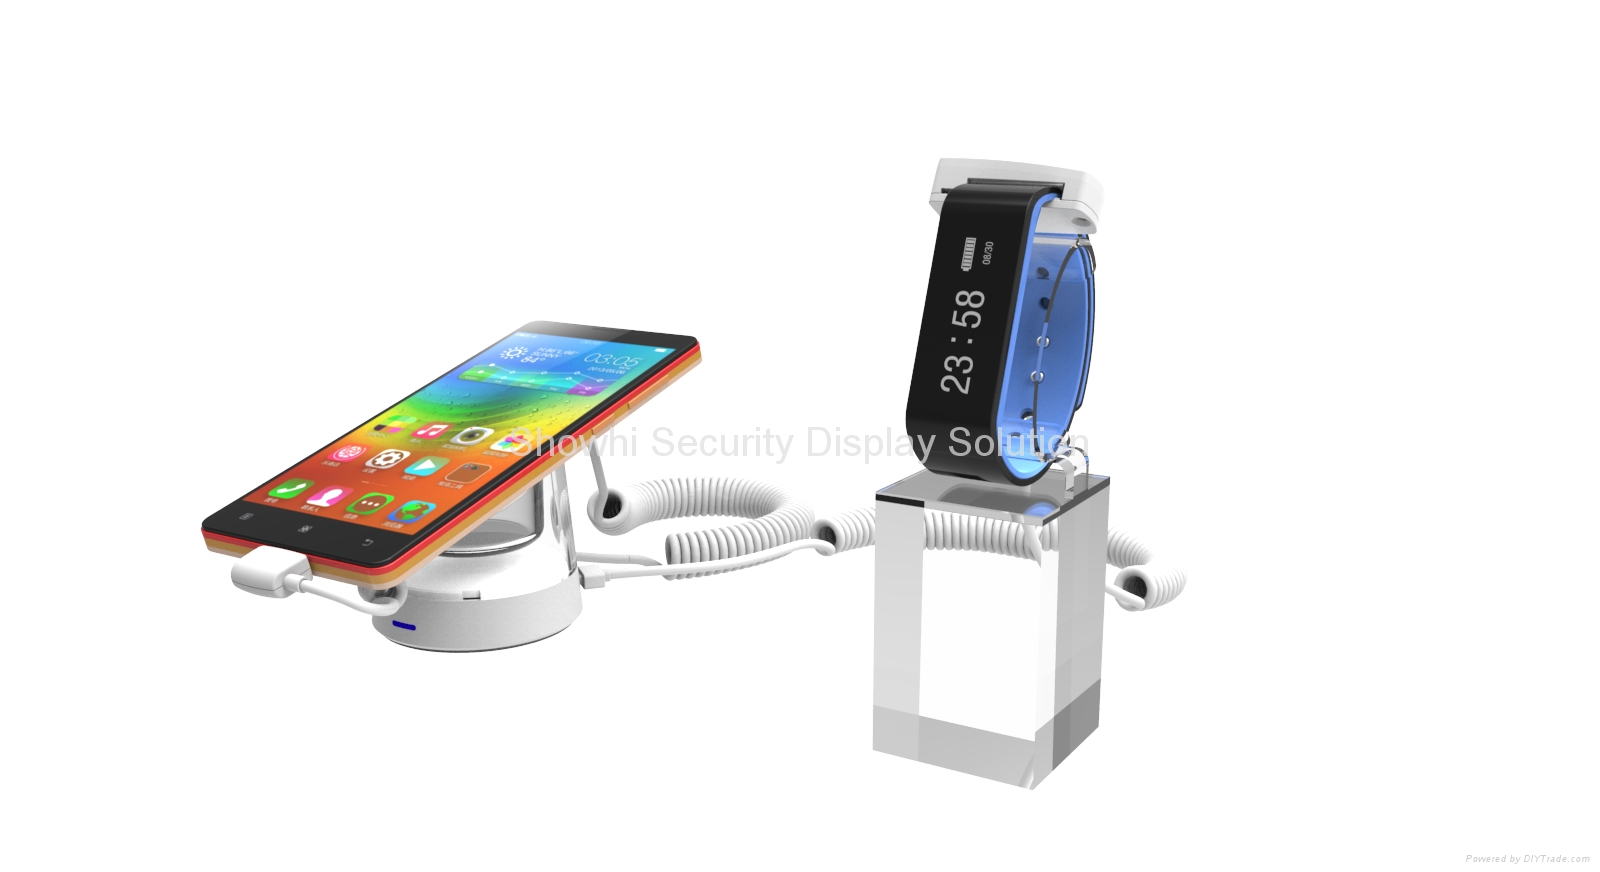 Showhi security display stand for cell phone and accesory charge alarm function  4